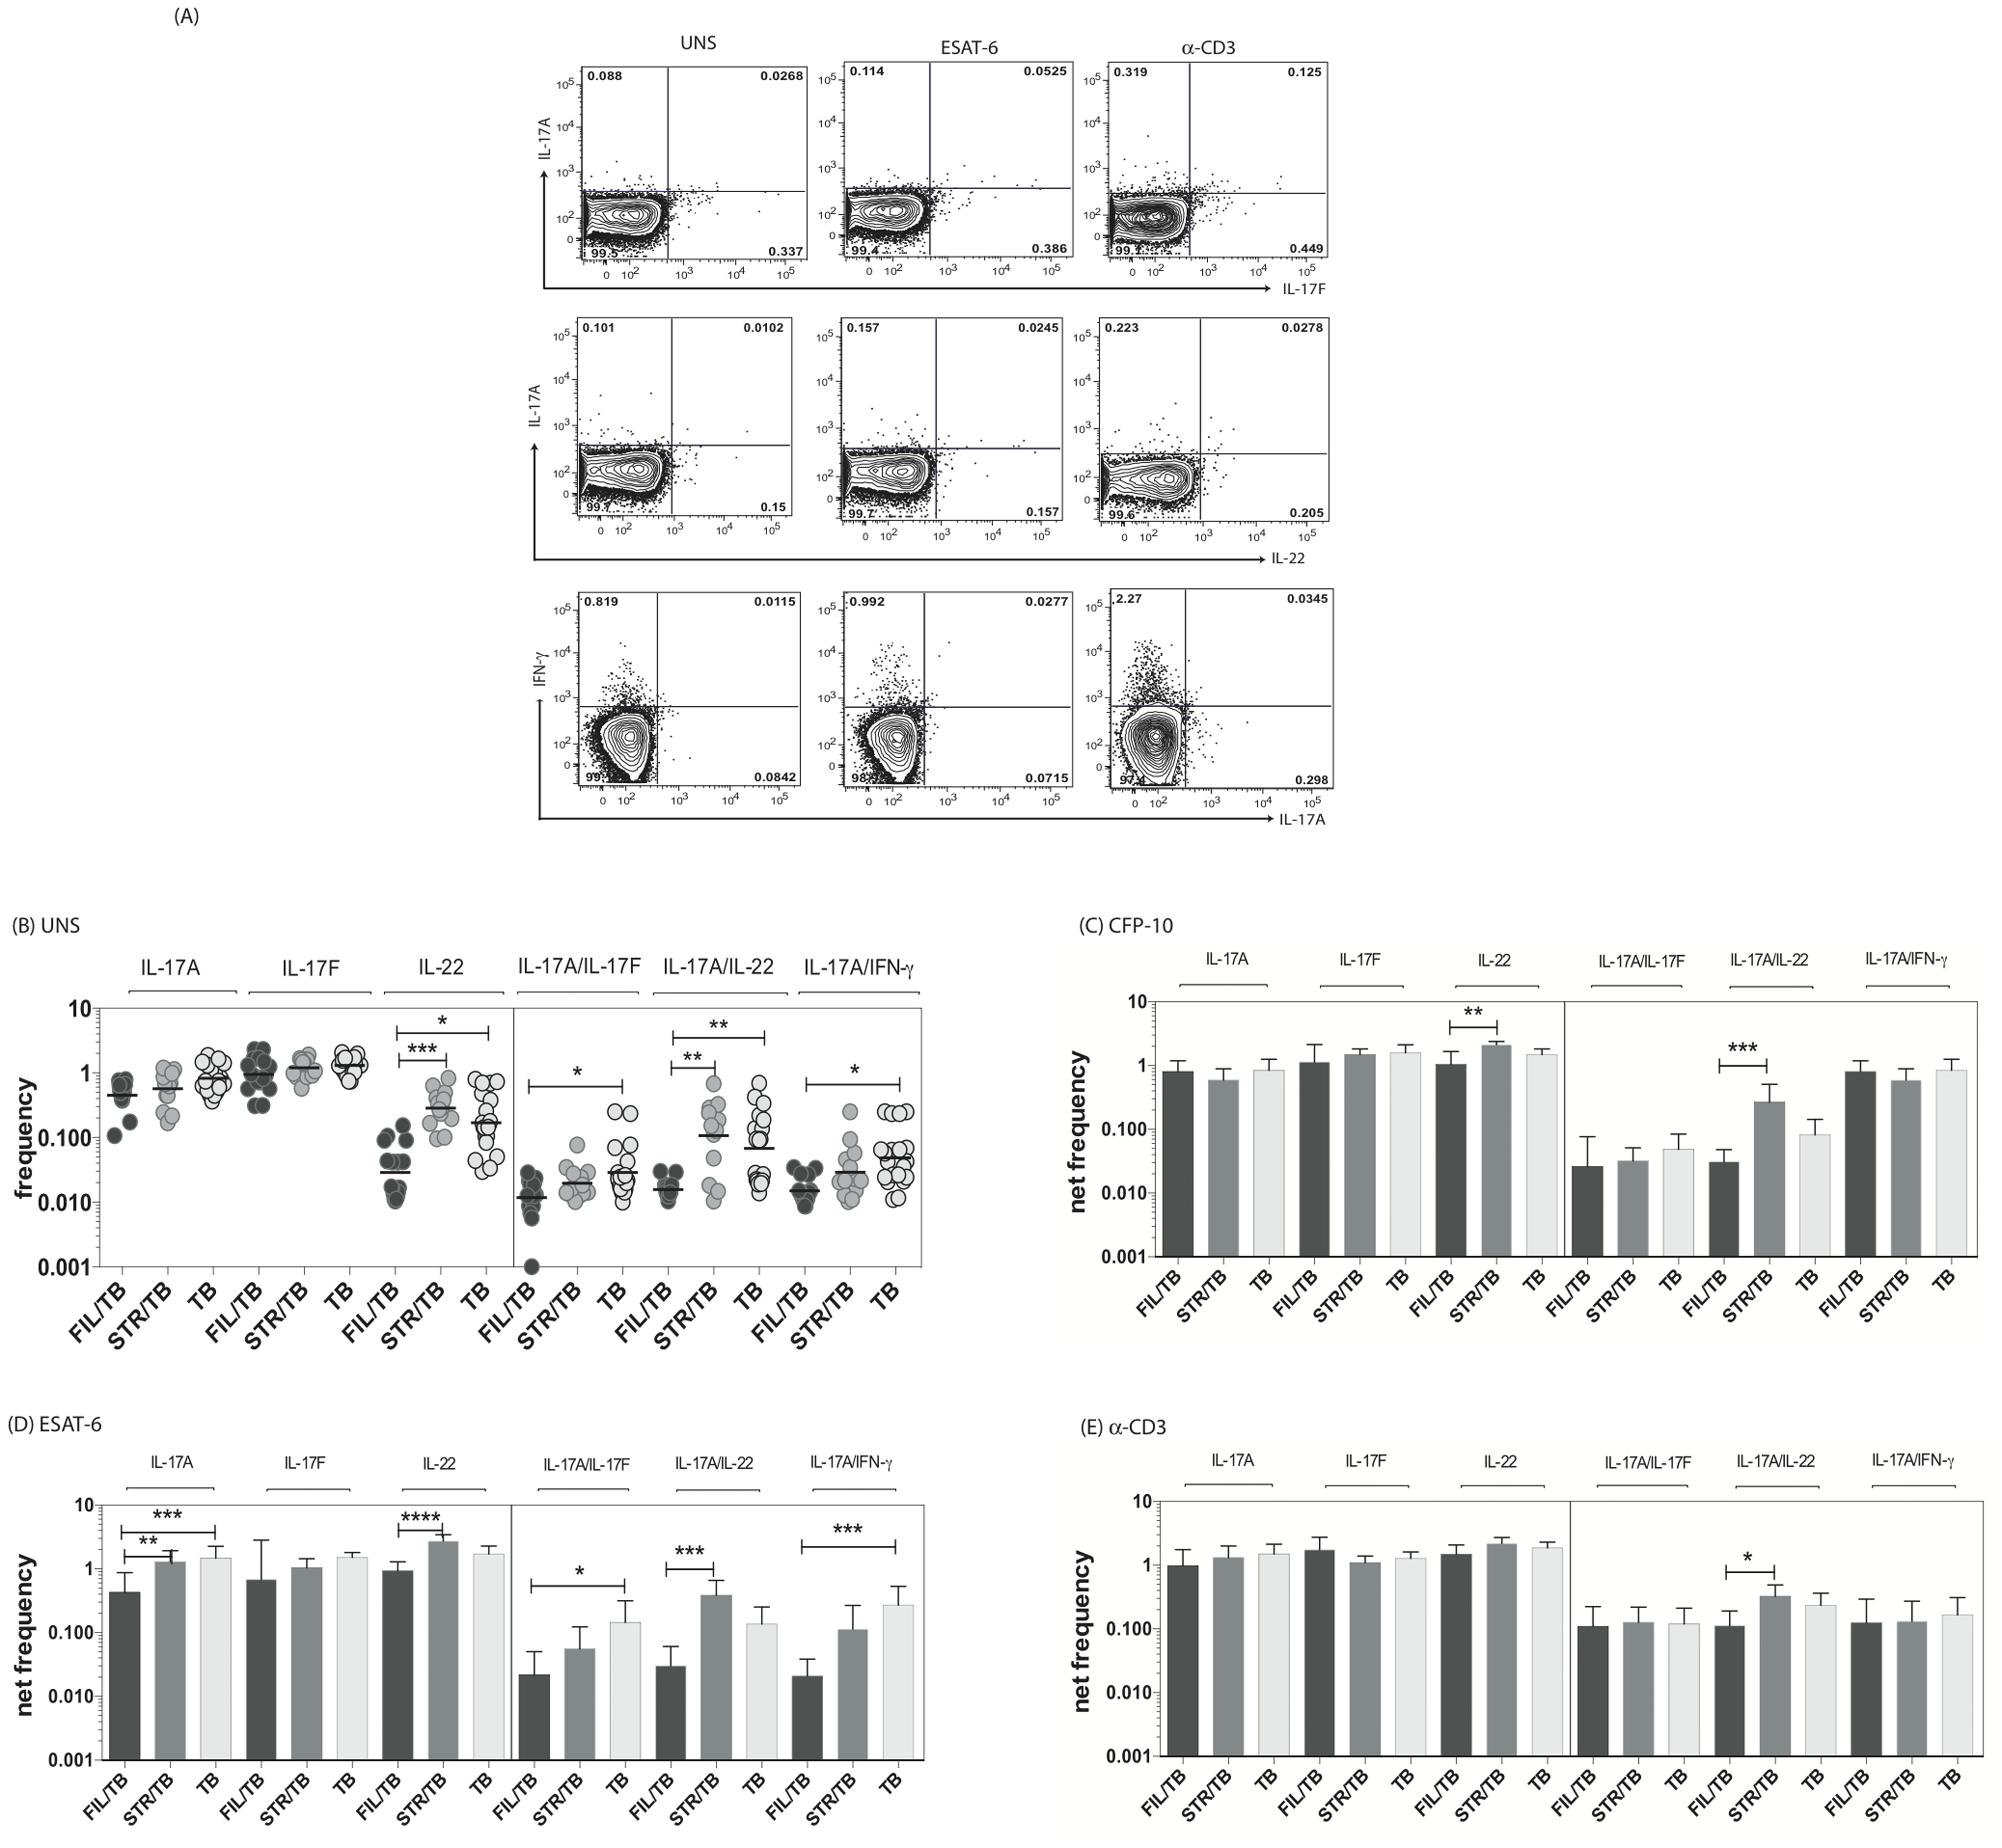 Helminth infections are associated with decreased frequencies of mono- and multifunctional mycobacterial antigen-specific CD4<sup>+</sup> Th17 cells in active TB.